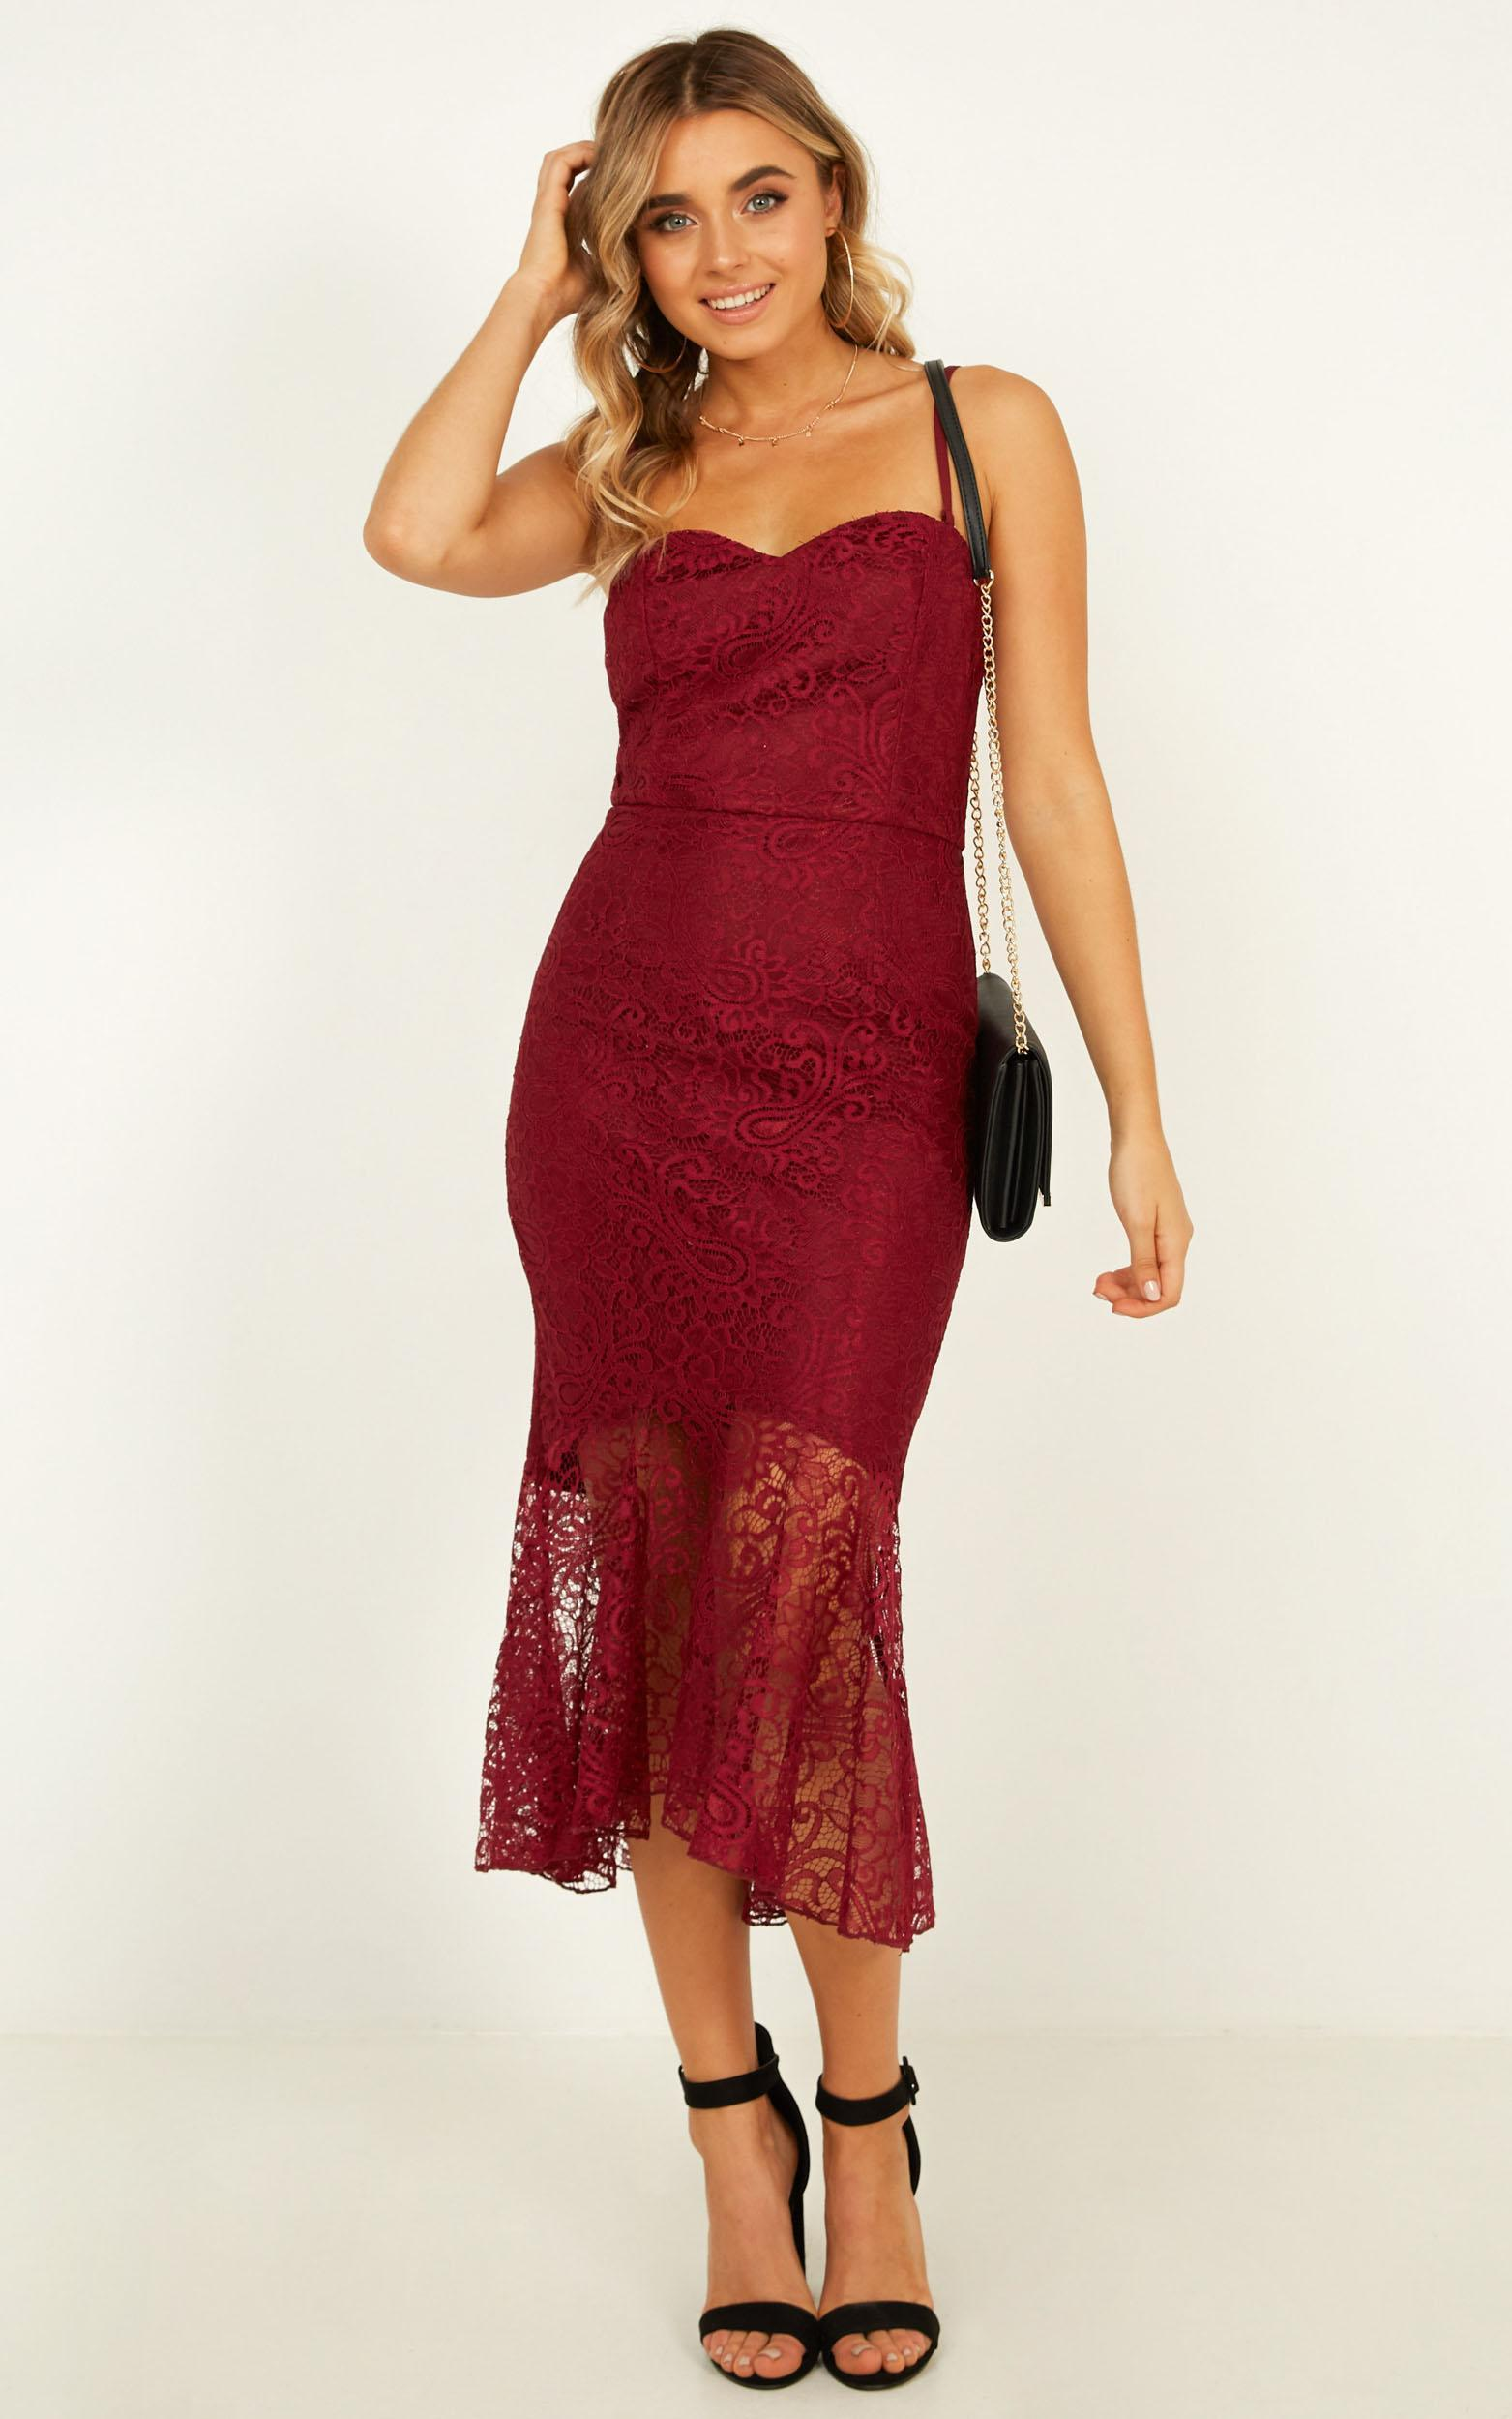 Crave Devotion Dress in wine lace - 14 (XL), Wine, hi-res image number null